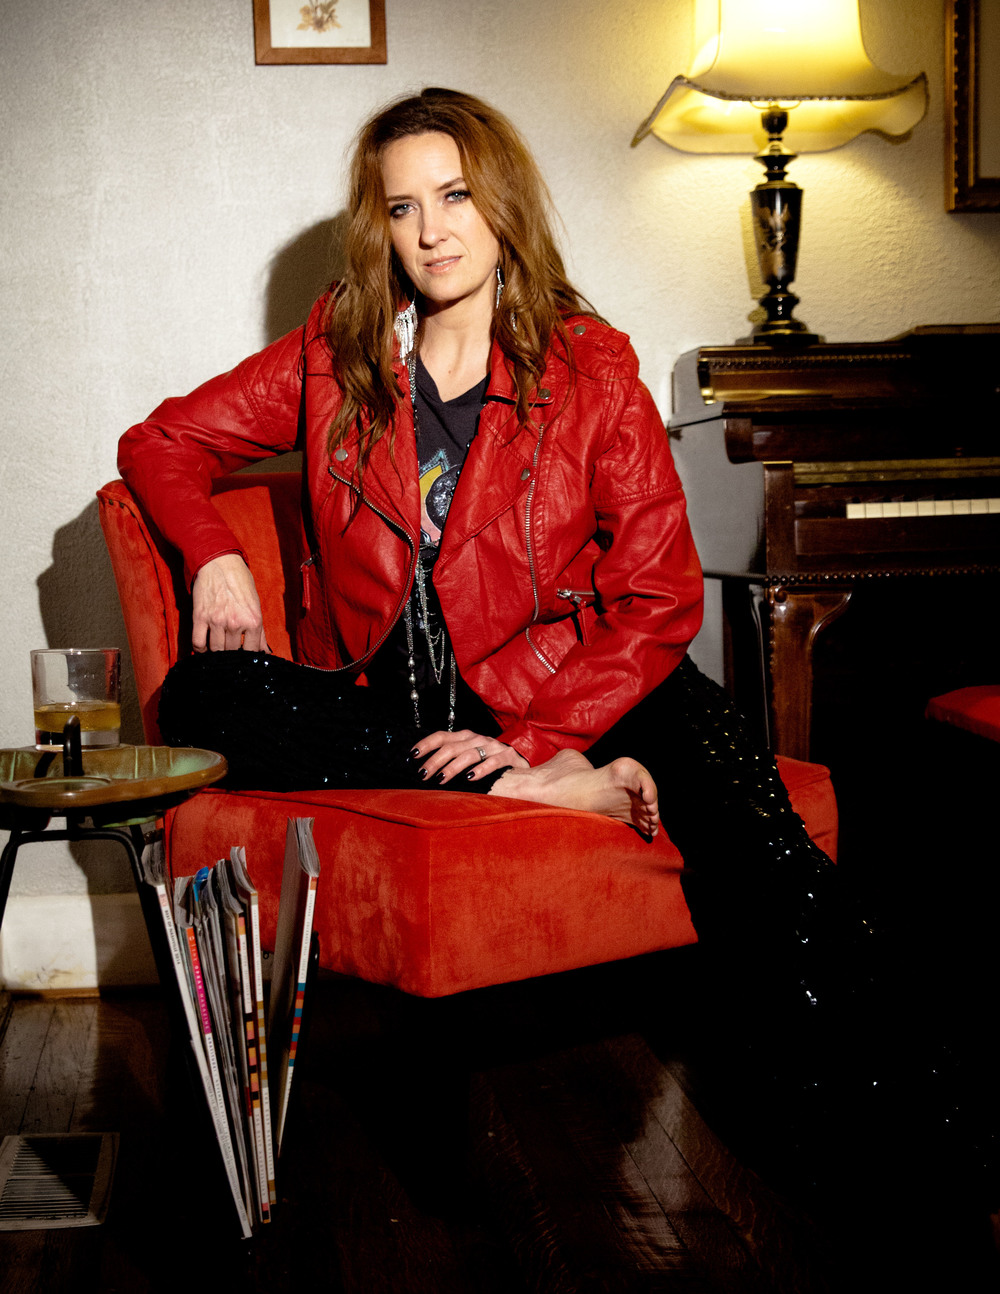 Kira-Small-Red-Jacket-Portrait-High-Rez-3140x4064.jpg